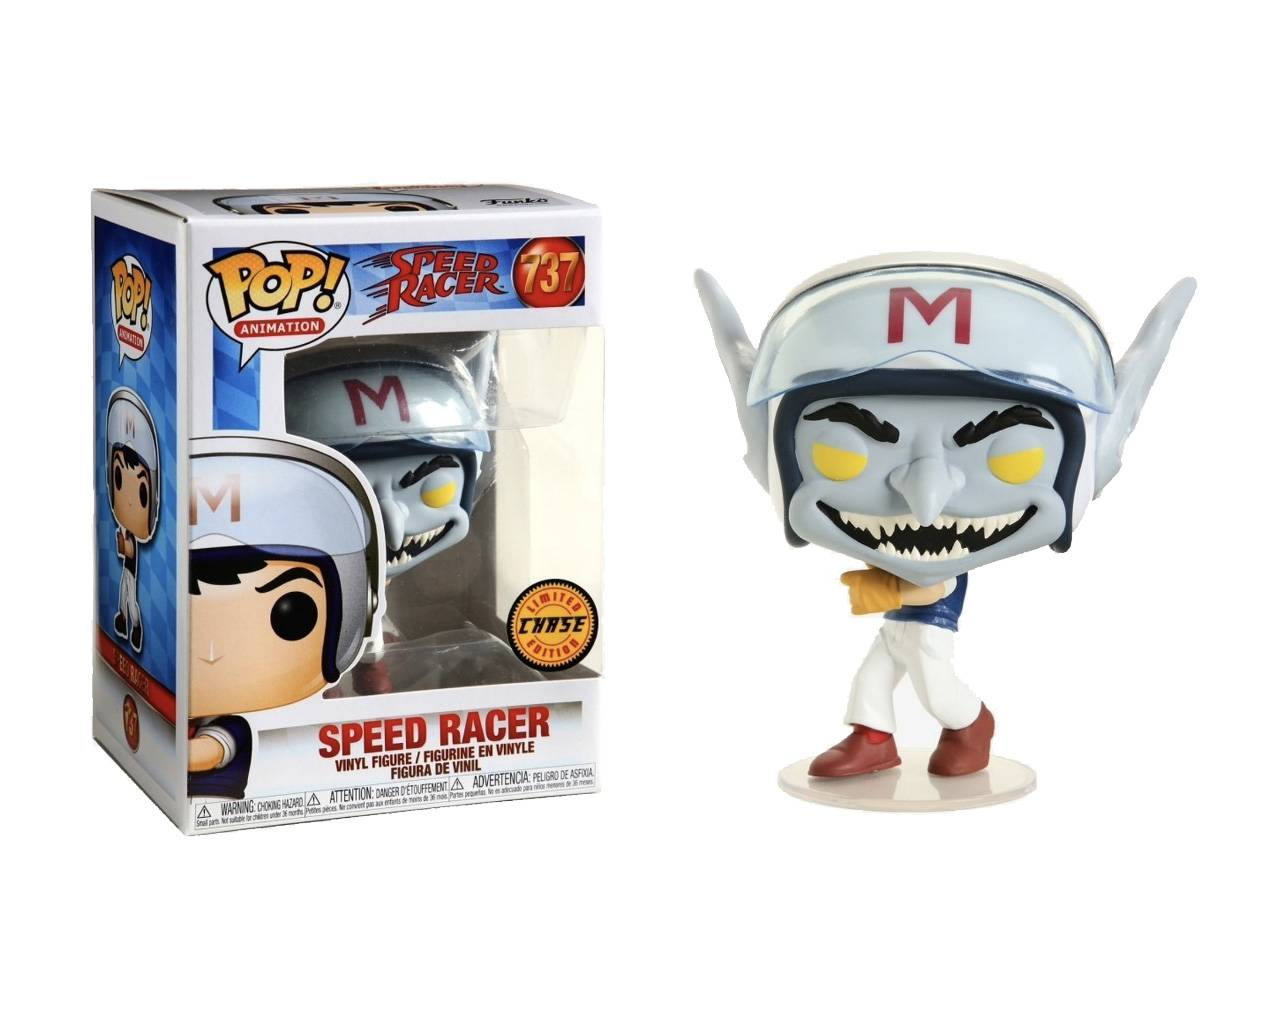 Speed Racer (Edición Chase) Pop! Vinyl